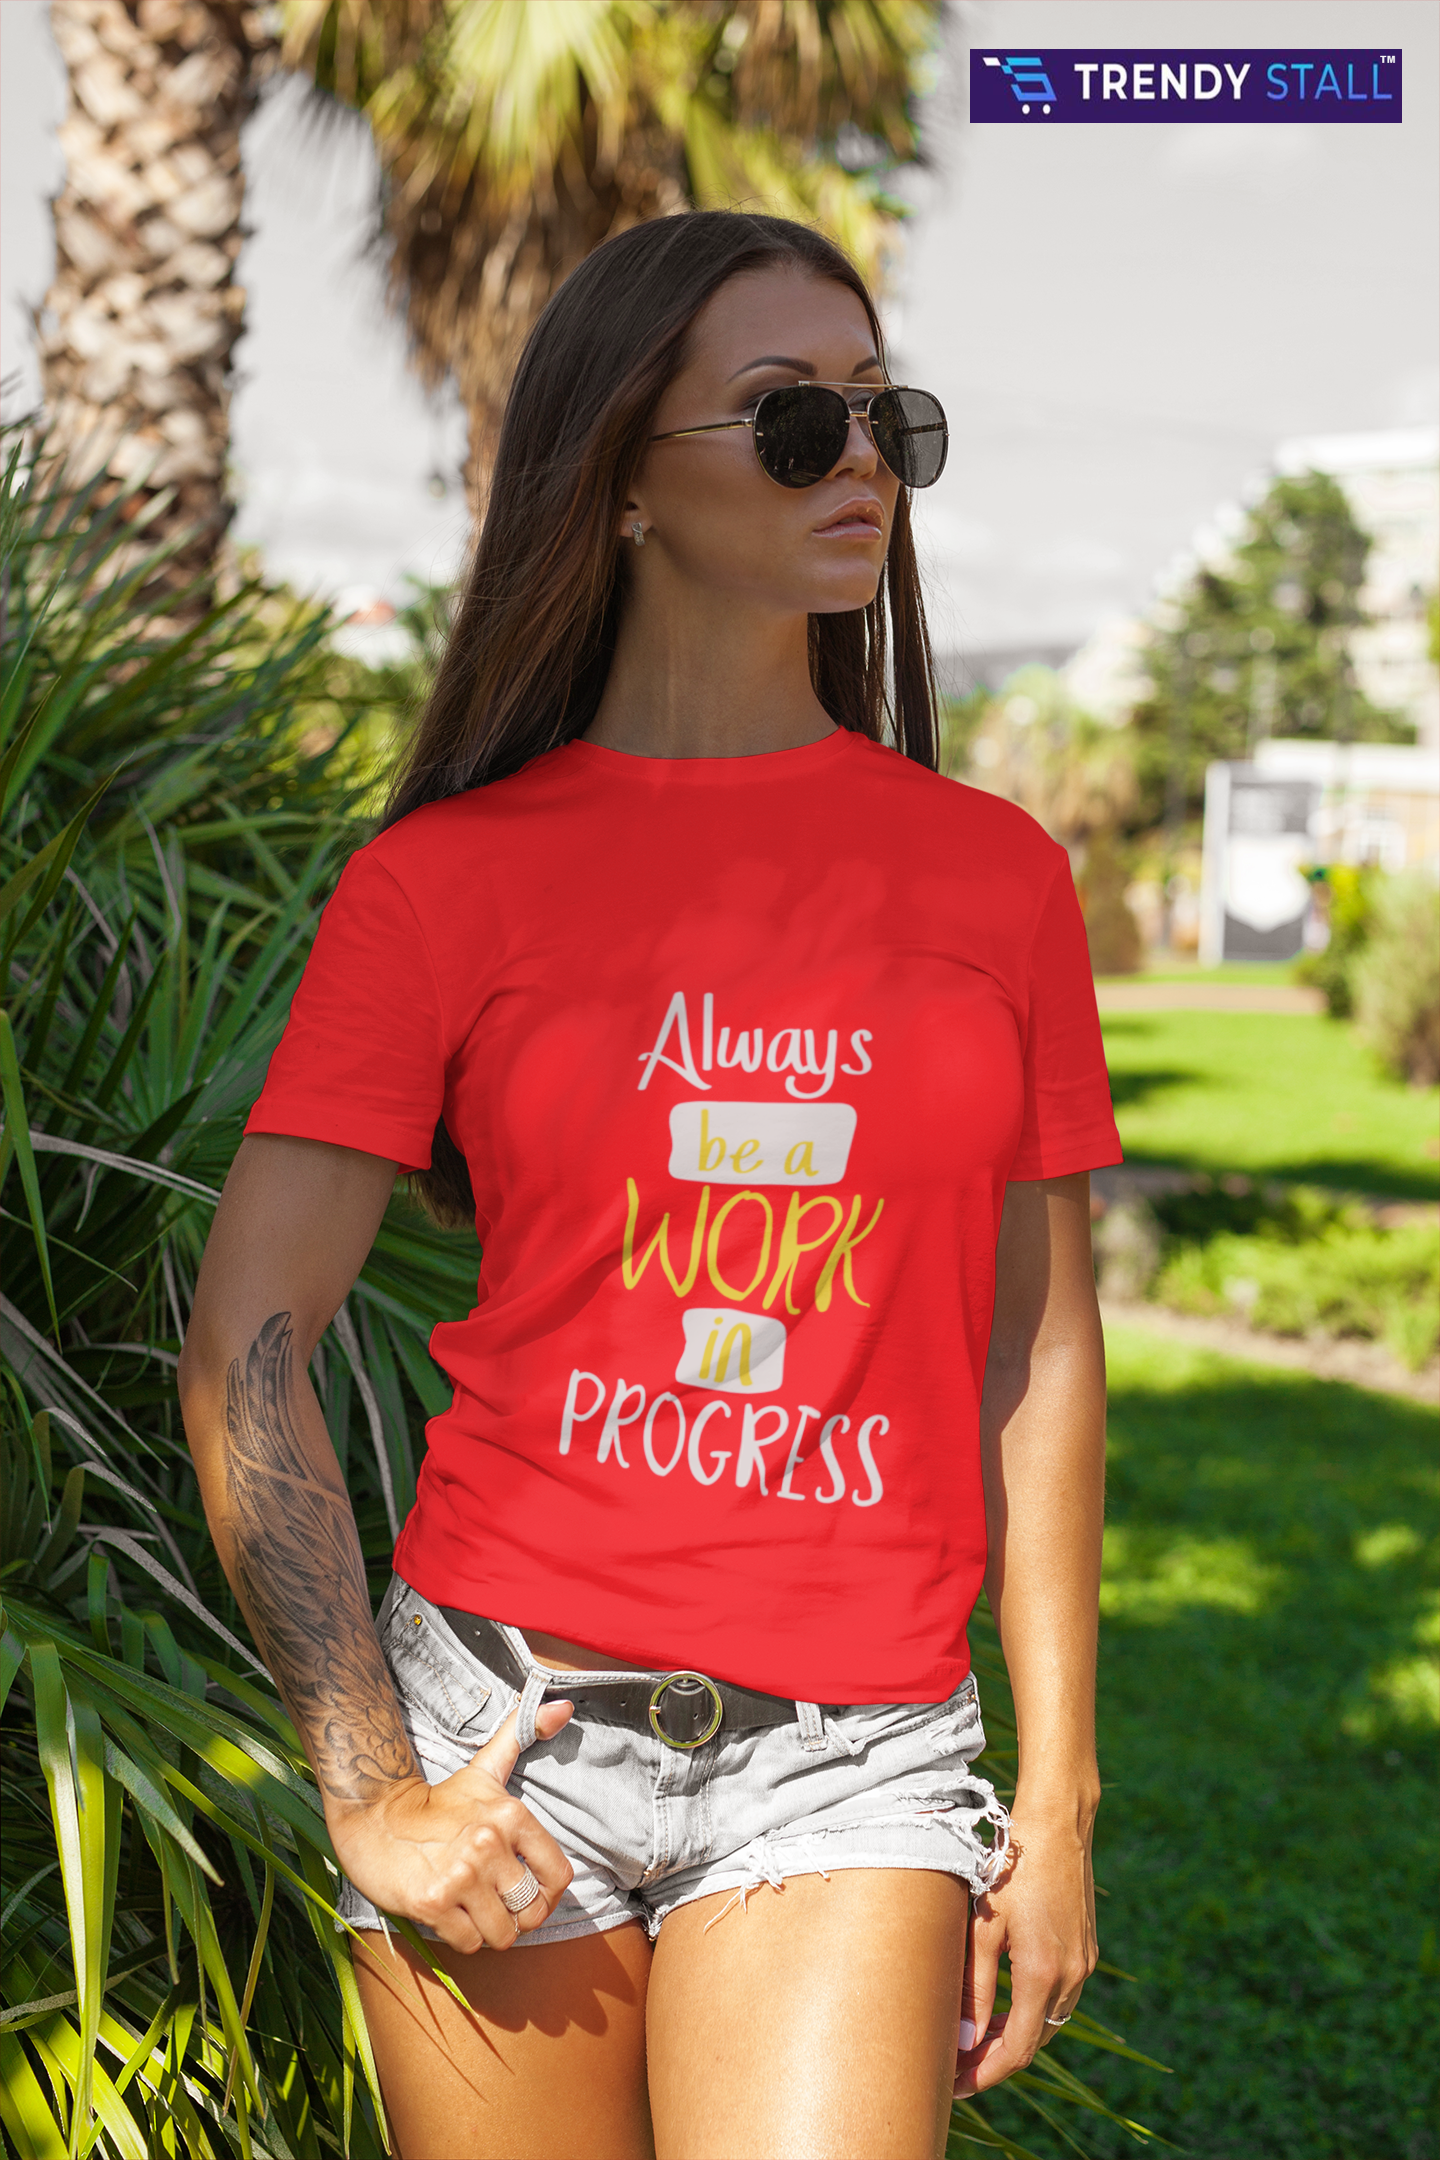 Her go-to tee fits like a well-loved favorite, featuring a slim feminine fit. Additionally, it is really comfortable - an item to fall in love with. .: Slim fit with a longer body length .: 100% Soft cotton (fiber content may vary for different colors) .: Light fabric (4.2 oz/yd² (142 g/m²)) .: Sewn in the label .: Runs smaller than usual S M L XL 2XL Width, in 15.99 16.74 17.76 18.75 19.77 Length, in 26.26 26.74 27.37 28 28.63 Sleeve length, in 5.04 5.28 5.52 5.75 5.99